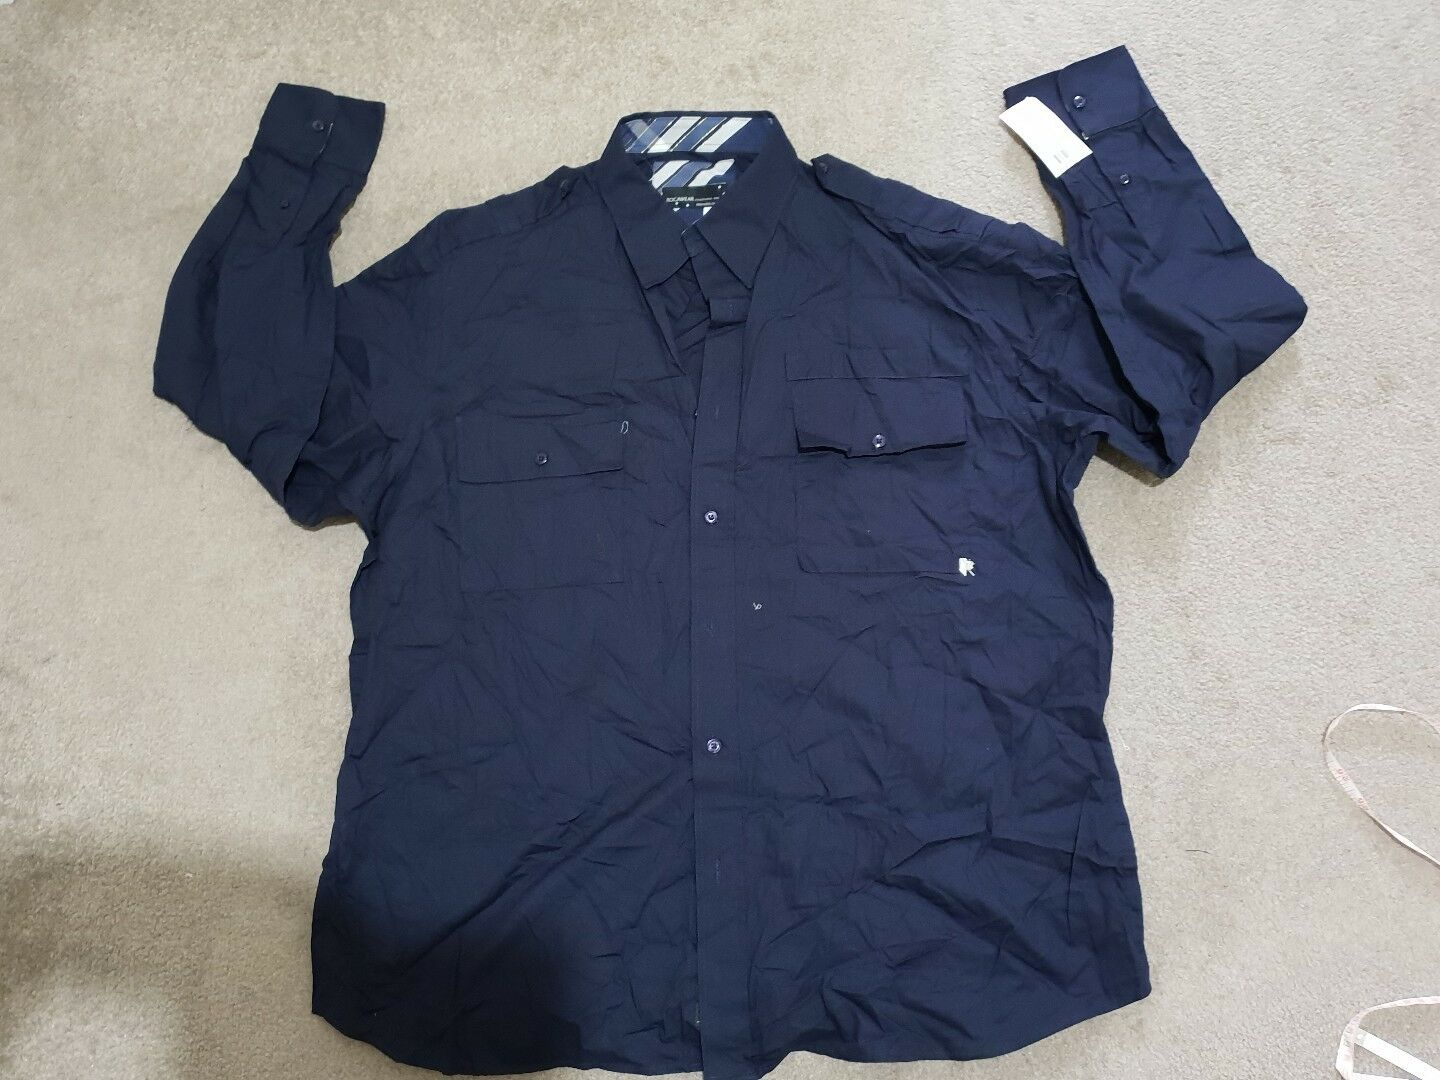 ROCAWEAR MEN'S SHIRT SIZE XXL, NEW WITH TAG.